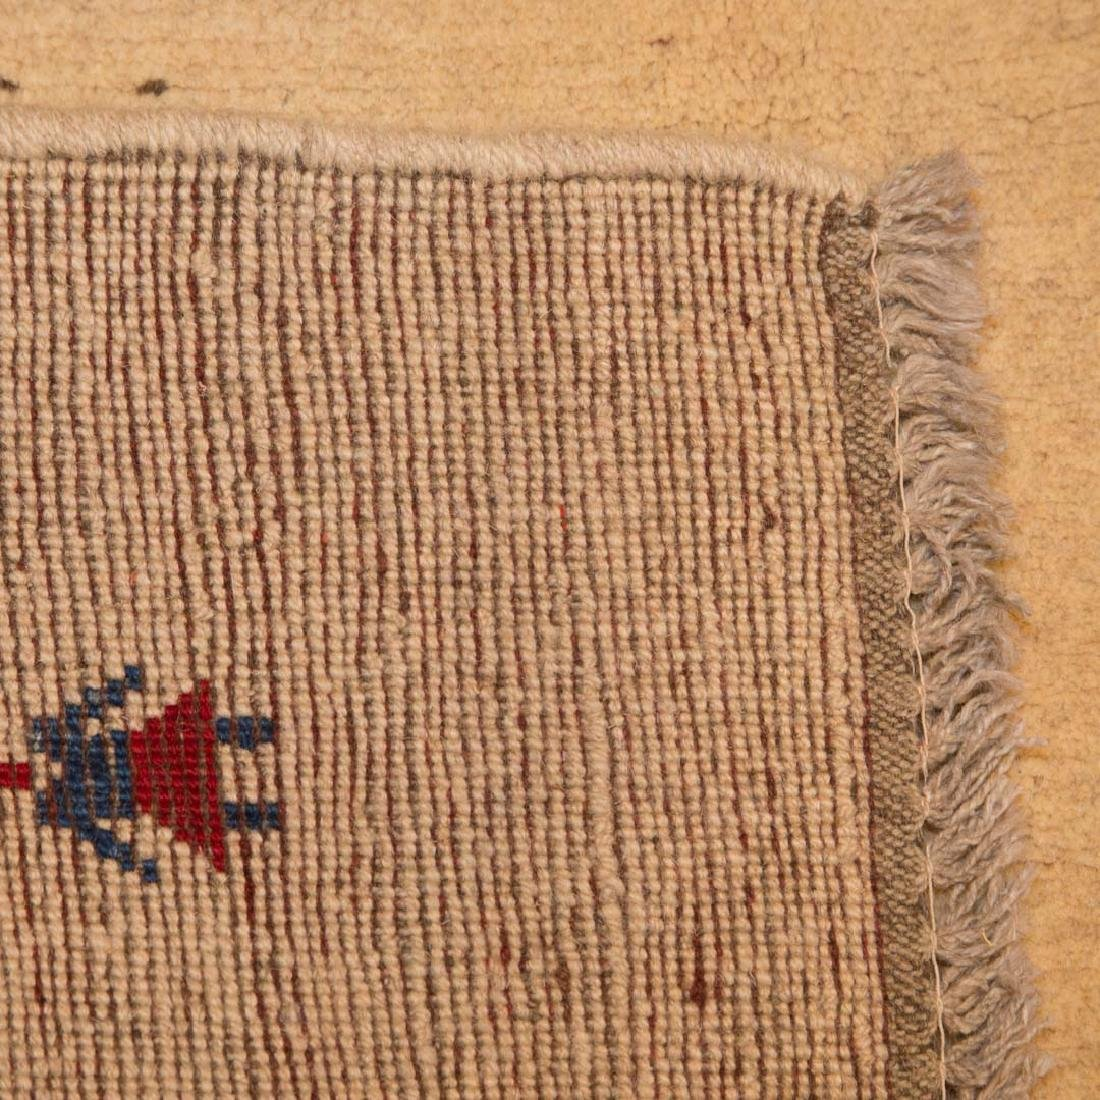 Persian Gabbeh rug, approx. 4.2 x 6.4 - 4